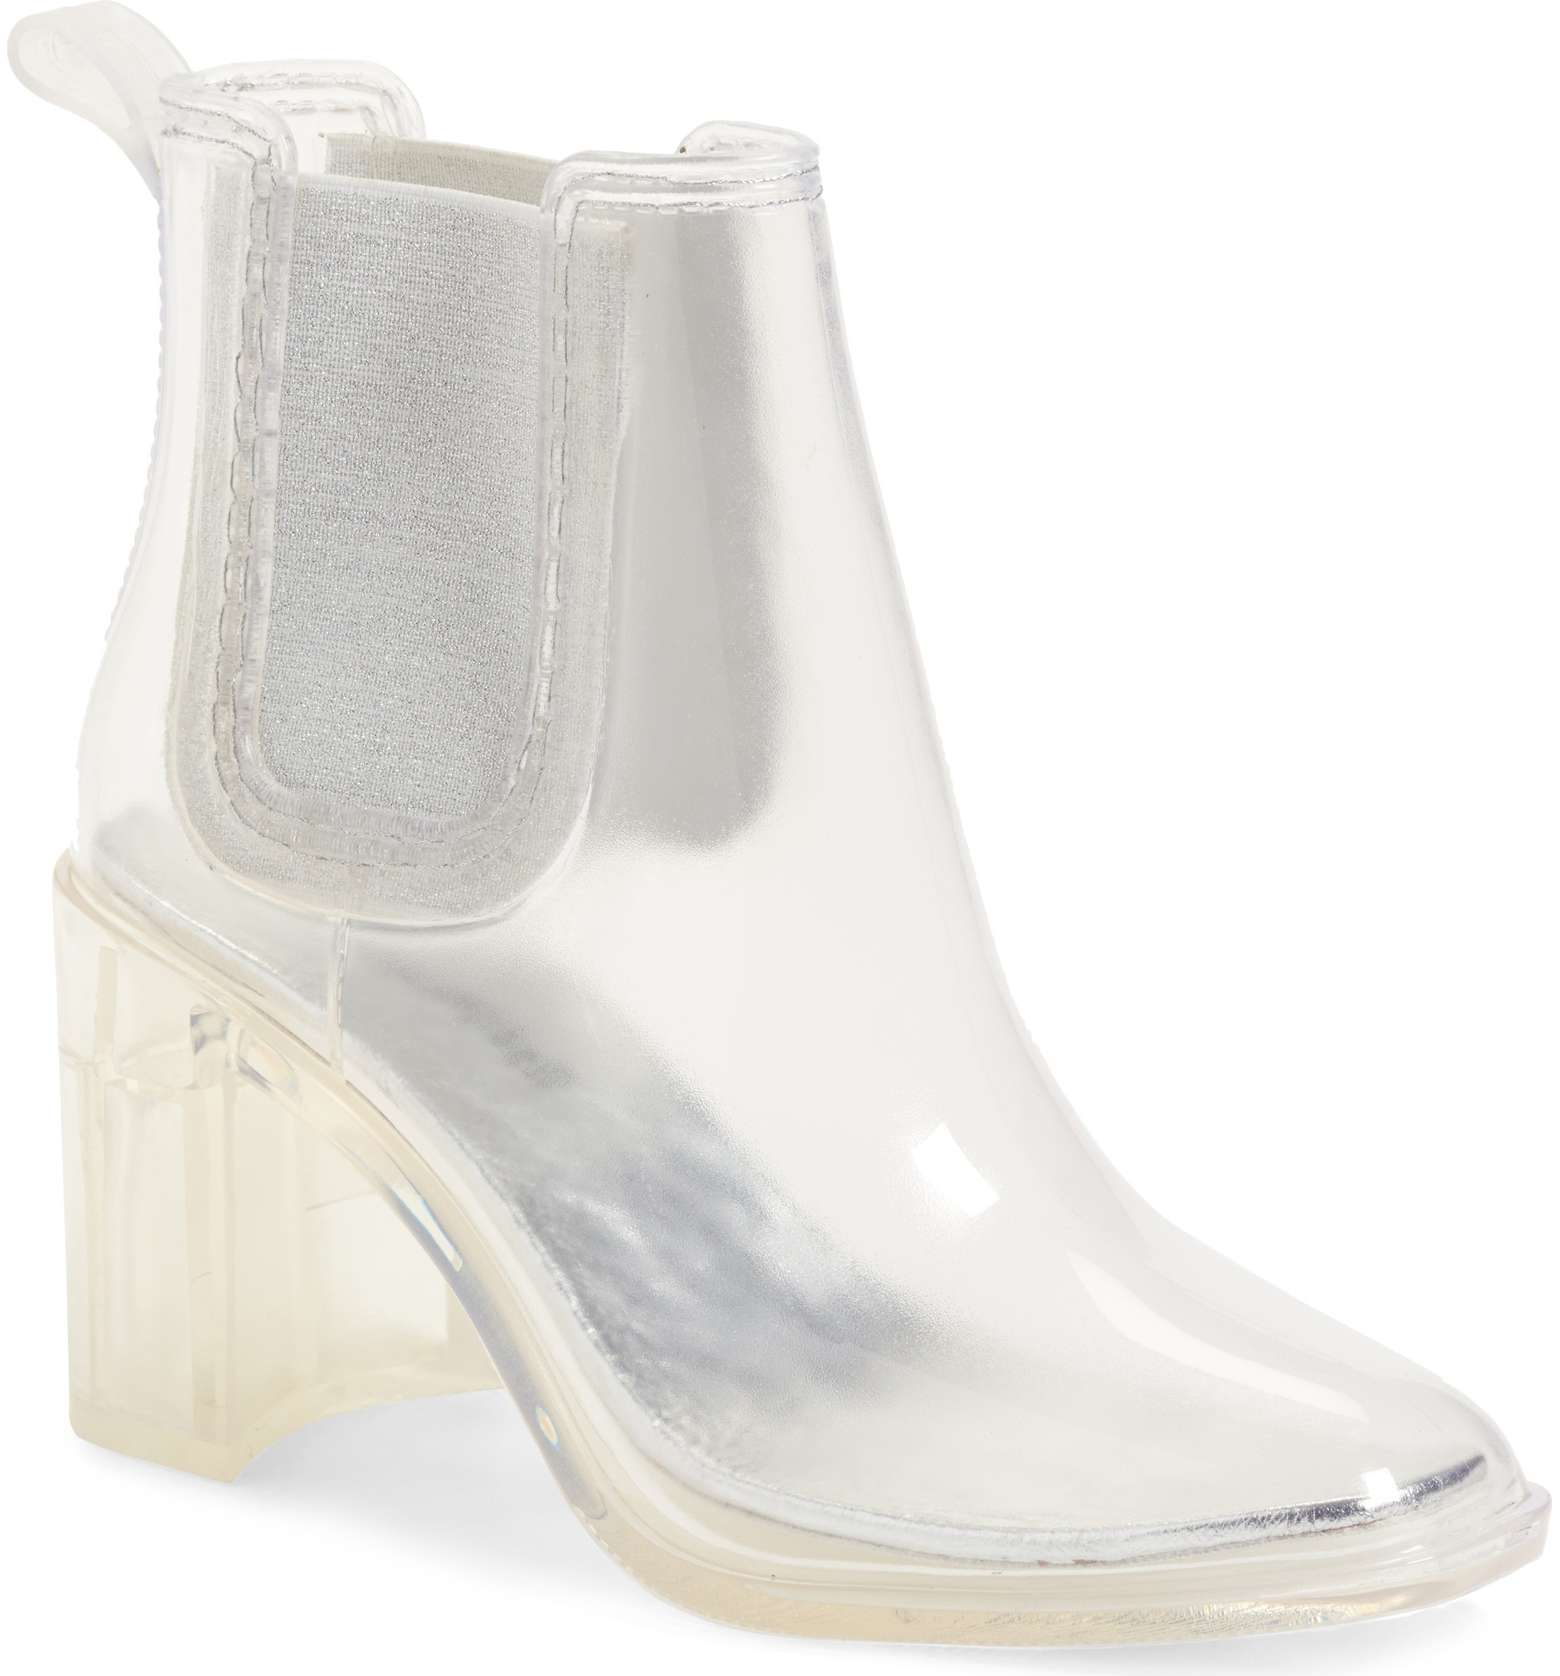 https://shop.nordstrom.com/s/jeffrey-campbell-hurricane-waterproof-boot-women/4710280?origin=keywordsearch-personalizedsort&fashioncolor=CLEAR